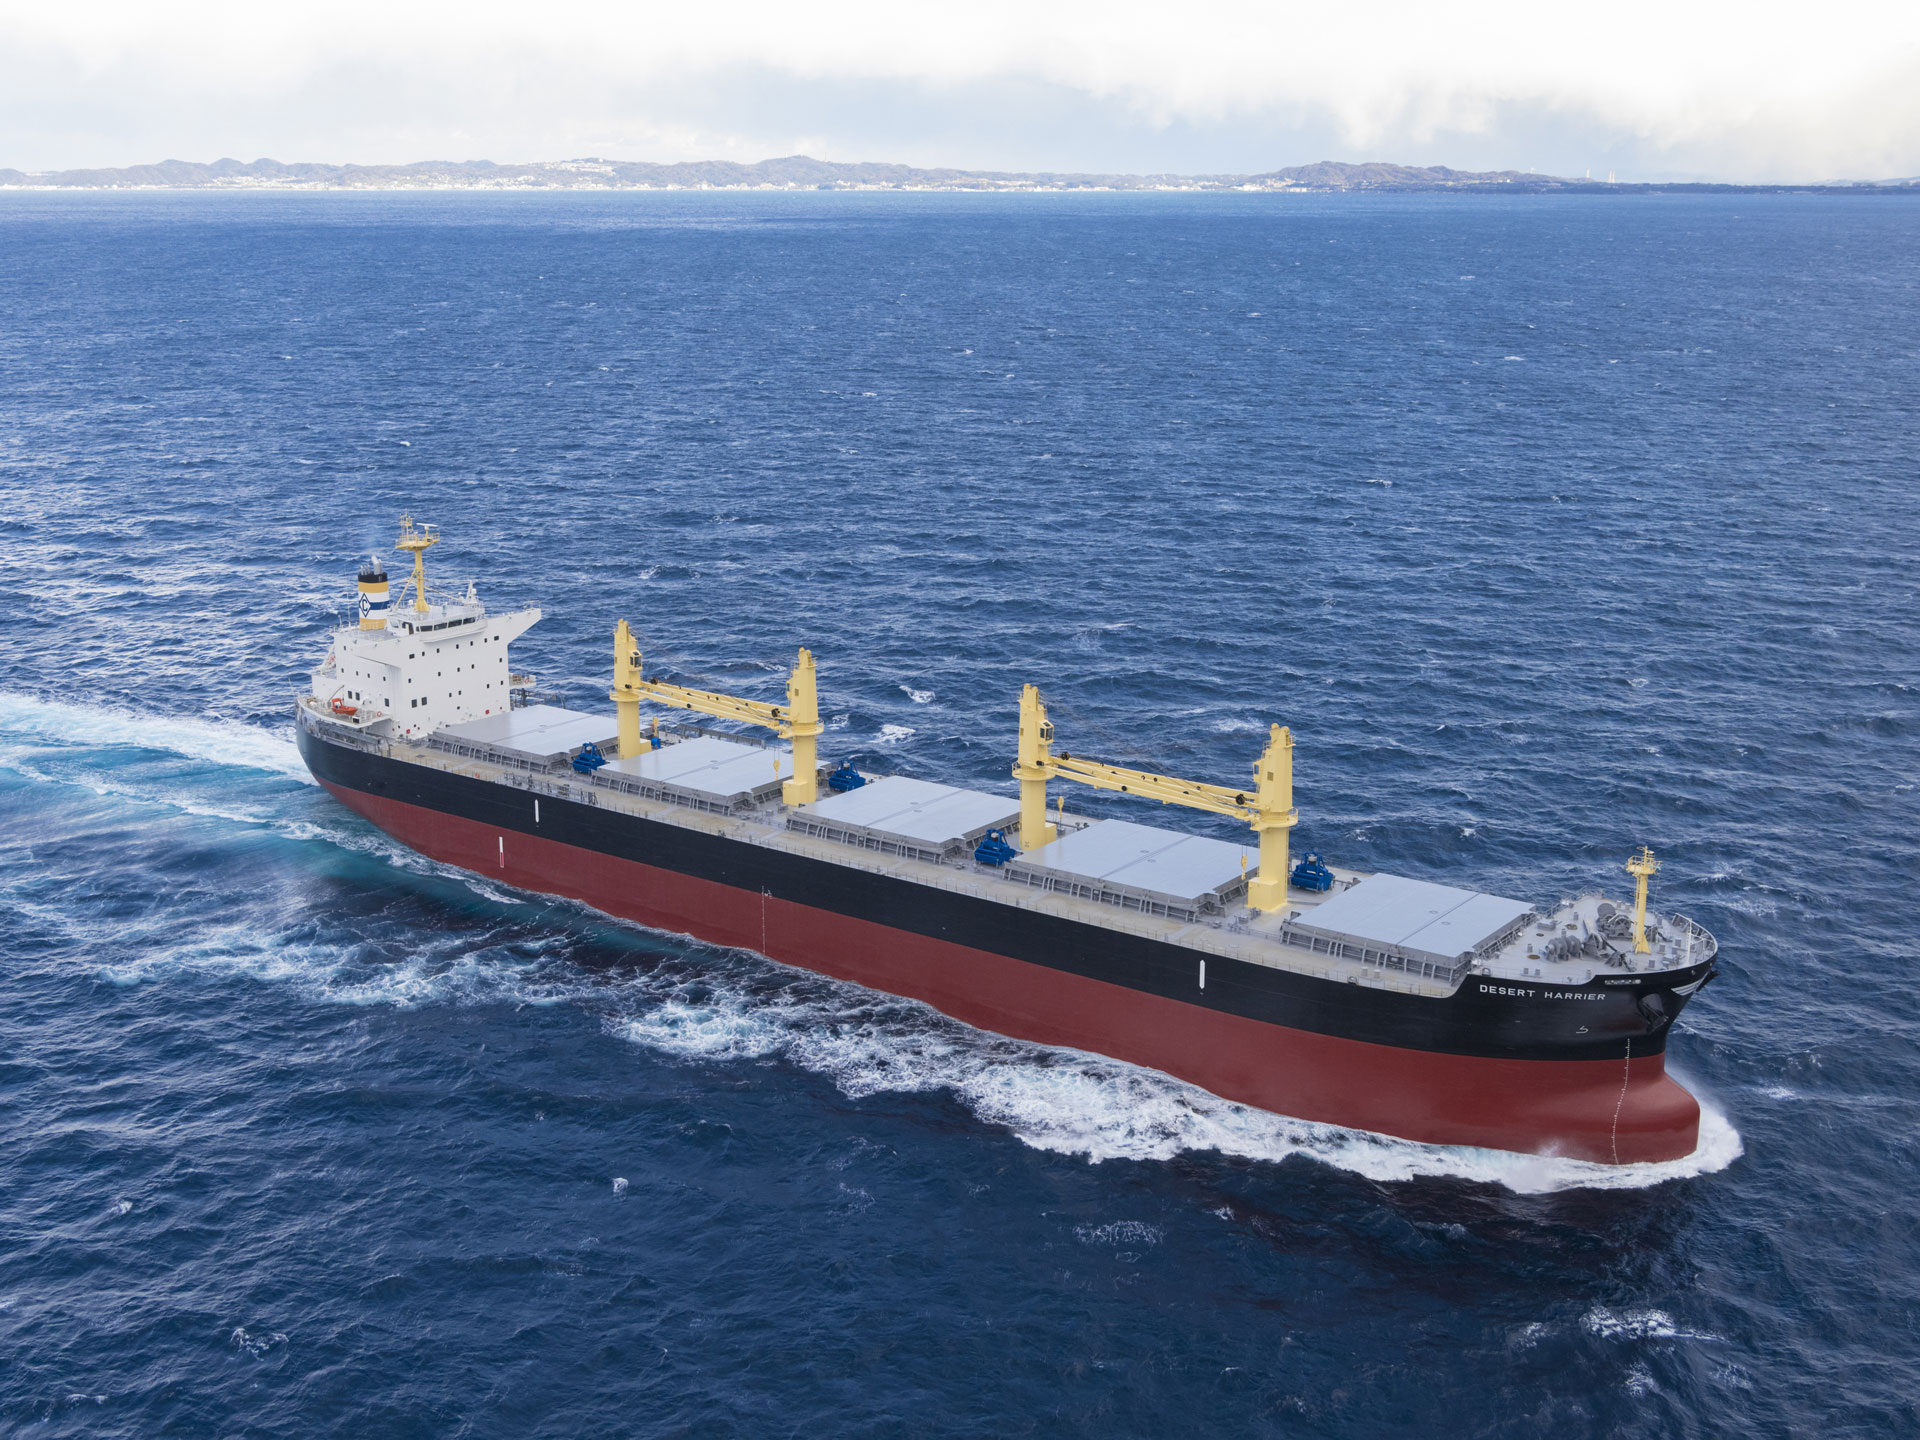 Desert Harrier – Atlantic Bulk Carriers Management LTD